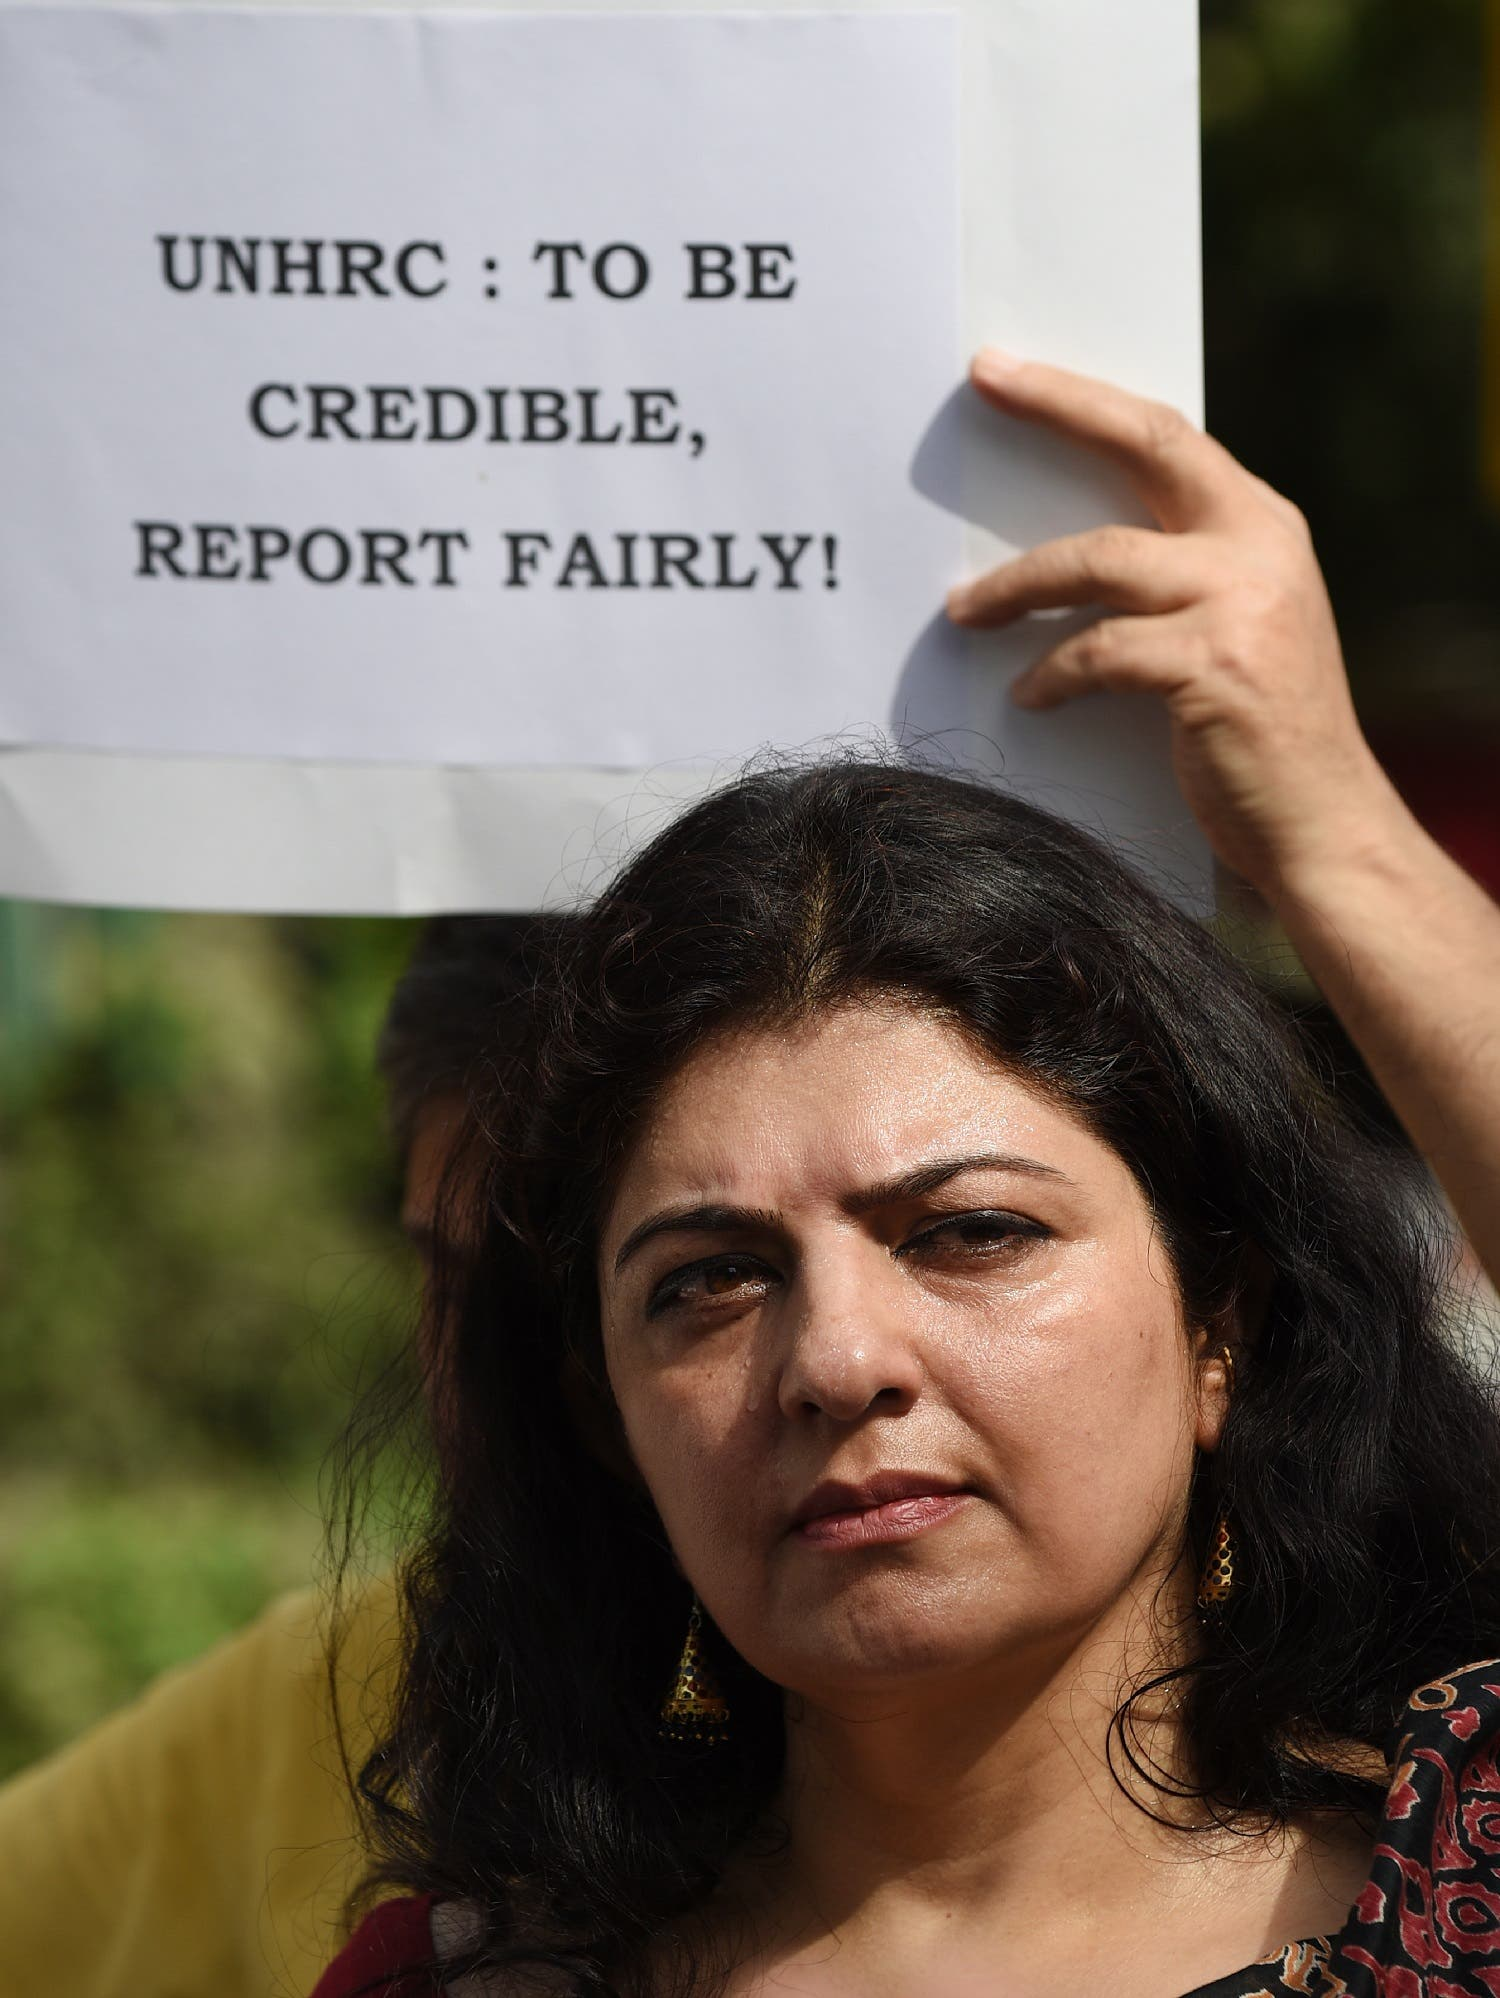 A Kashmiri Hindu protester holds a placard during a protest following the report of Office of the United Nations High Commissioner for Human Rights (OHCHR) outside the UN office in New Delhi on June 25, 2018. (AFP)